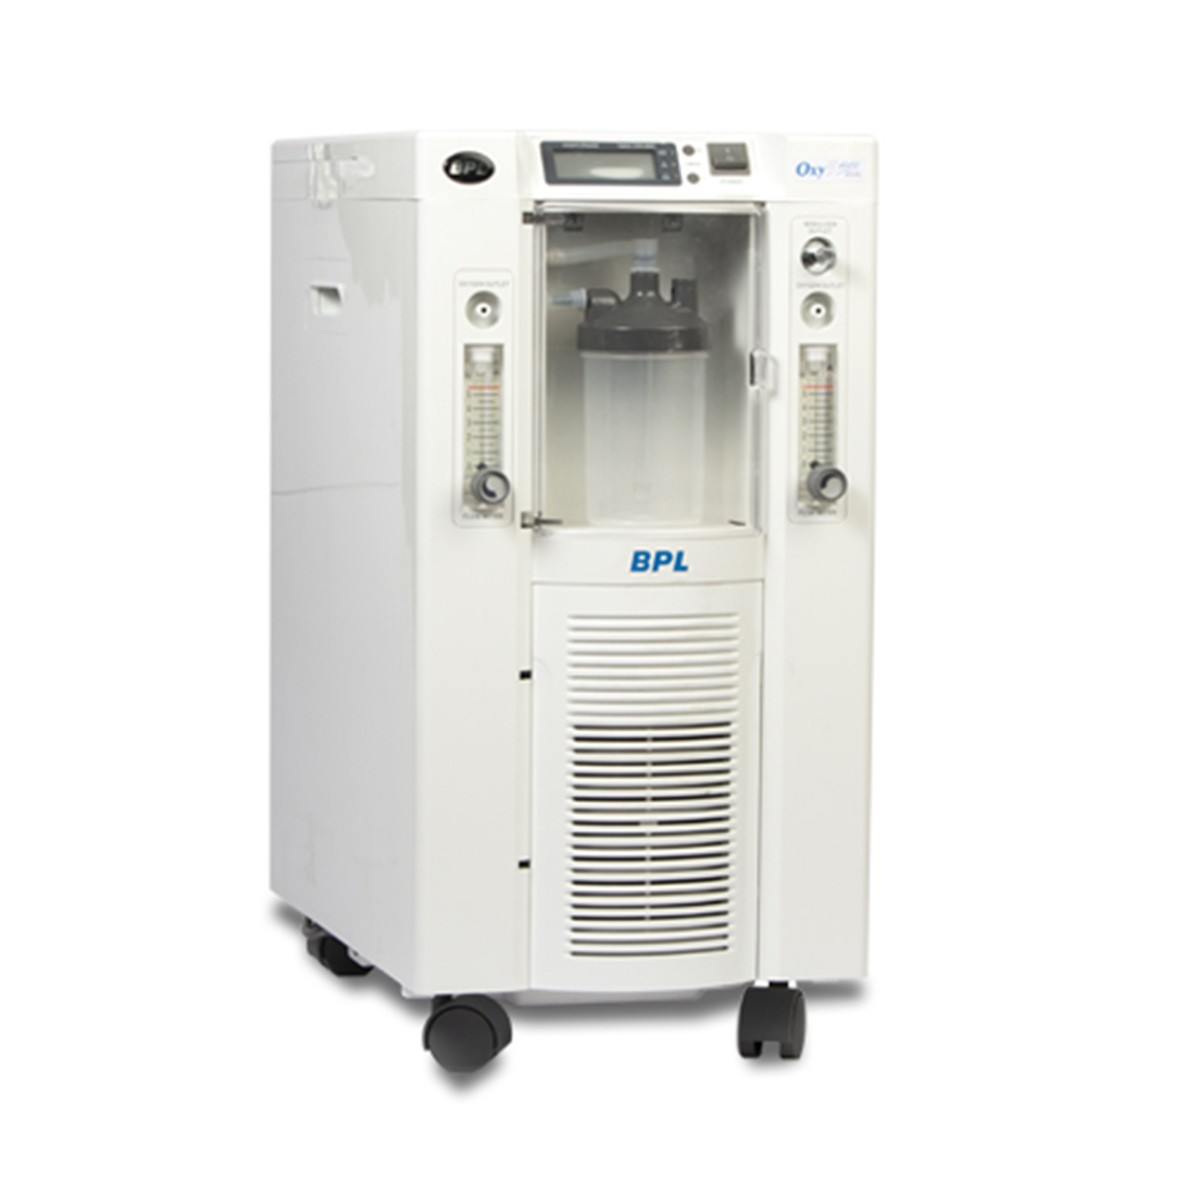 BPL Oxygen Concentrator - Oxy 5 Neo Dual